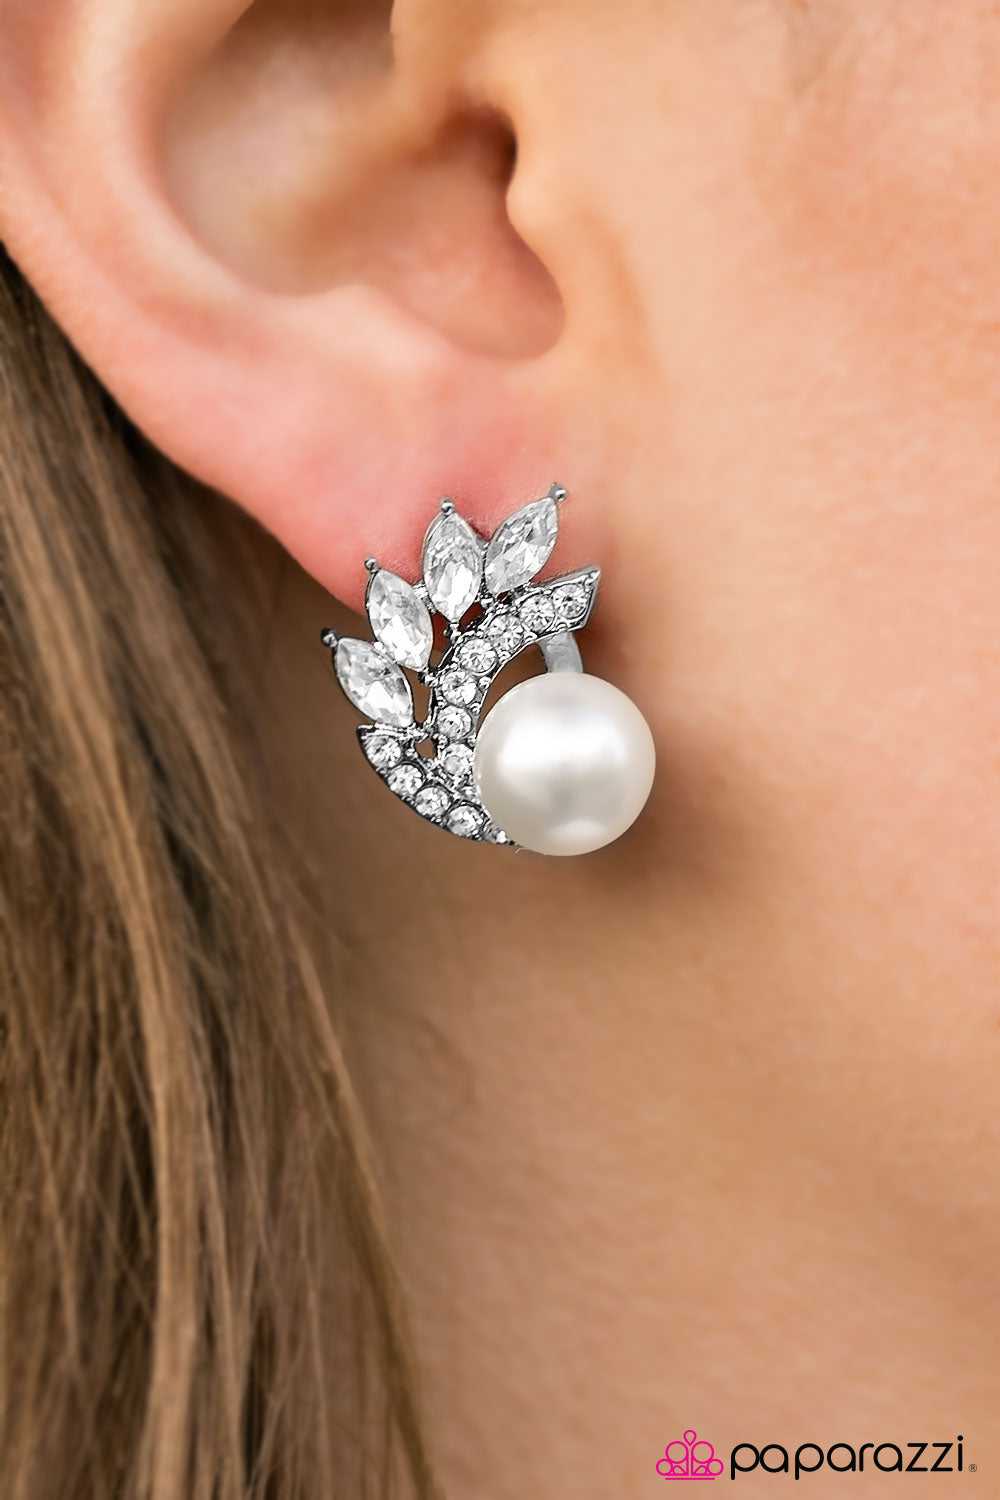 Arctic Blast - Paparazzi earrings